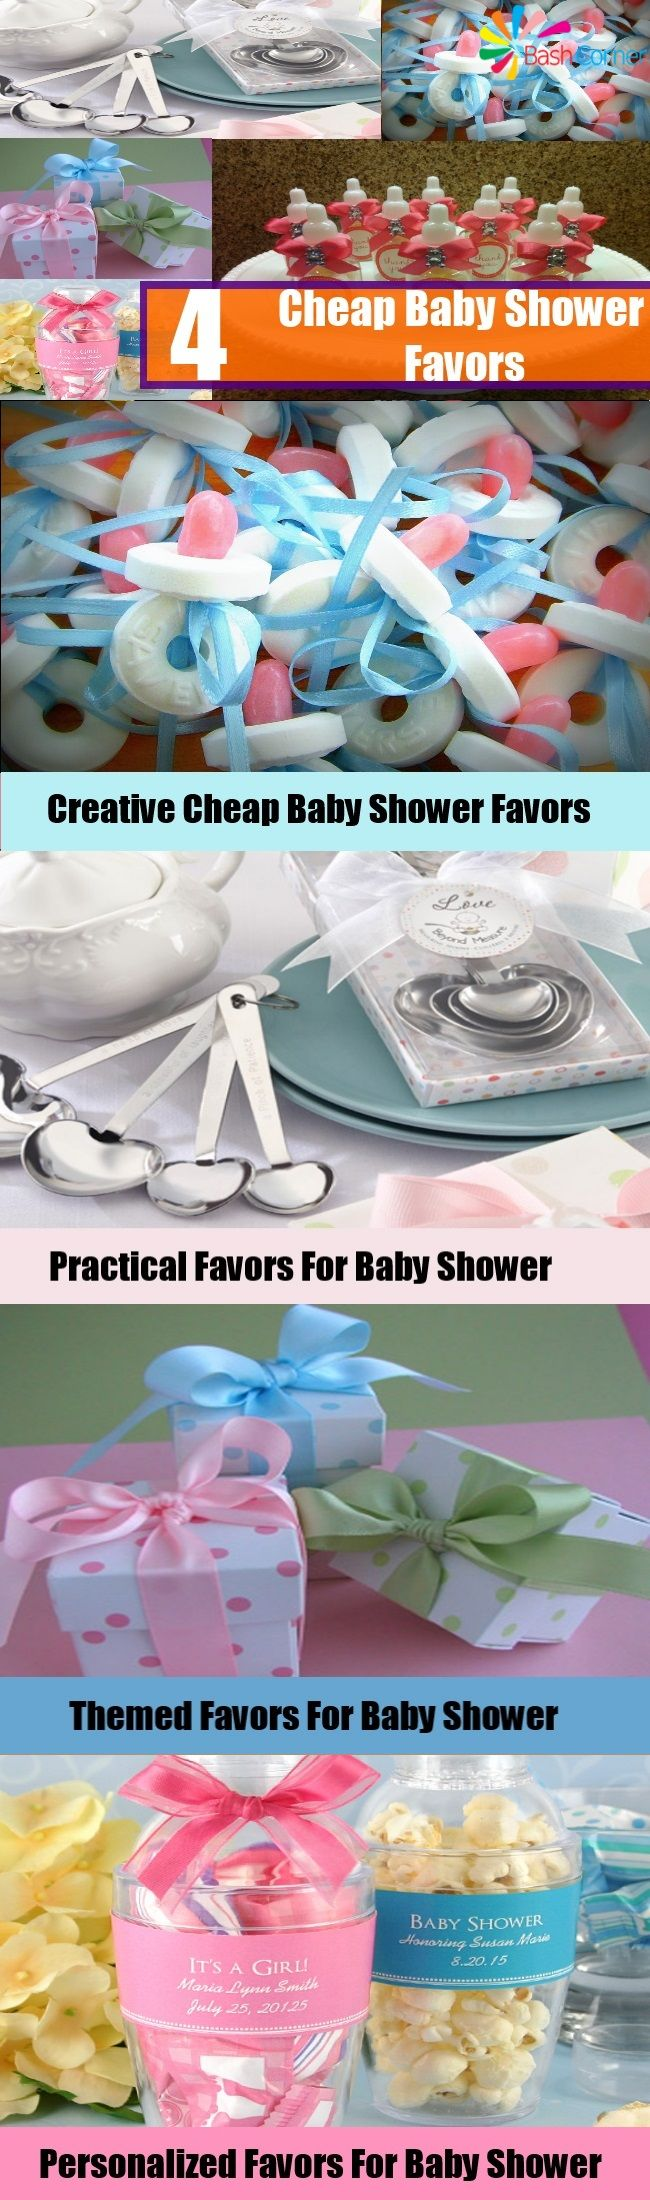 Do You Know About Inexpensive Baby Shower Favors?Try These Ideas